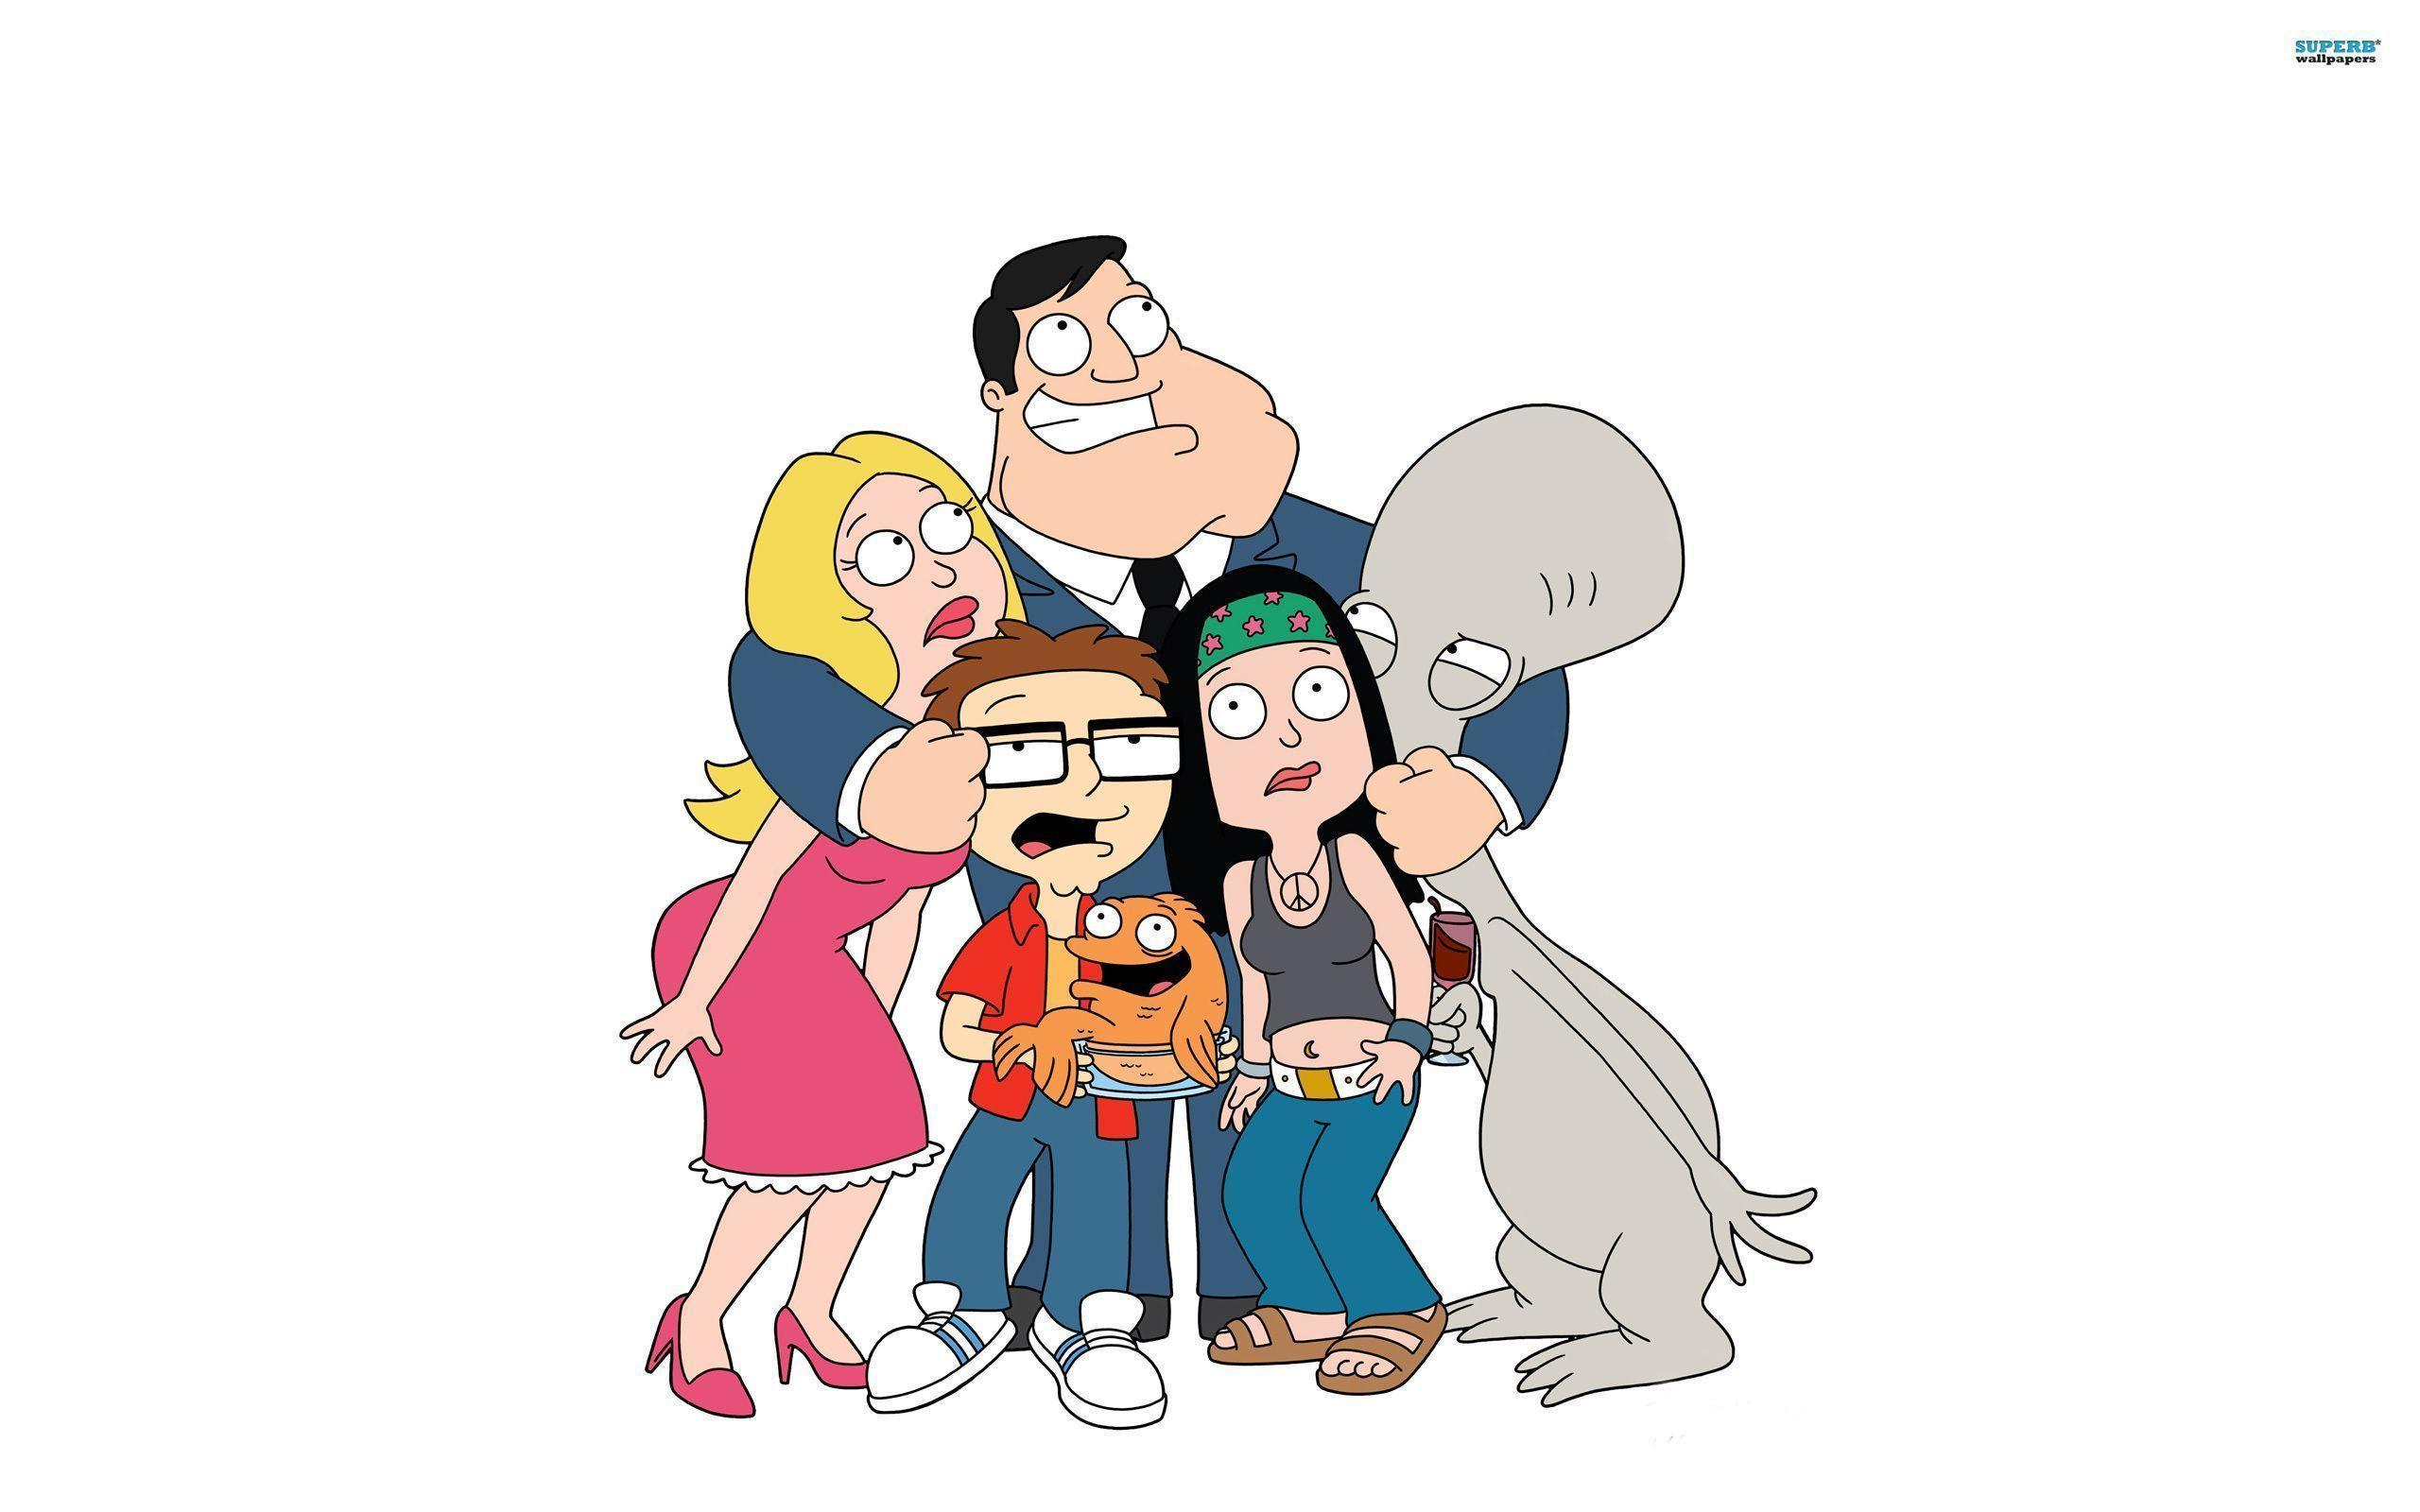 American Dad Hd Wallpaper 39942 in Movies - Telusers.com